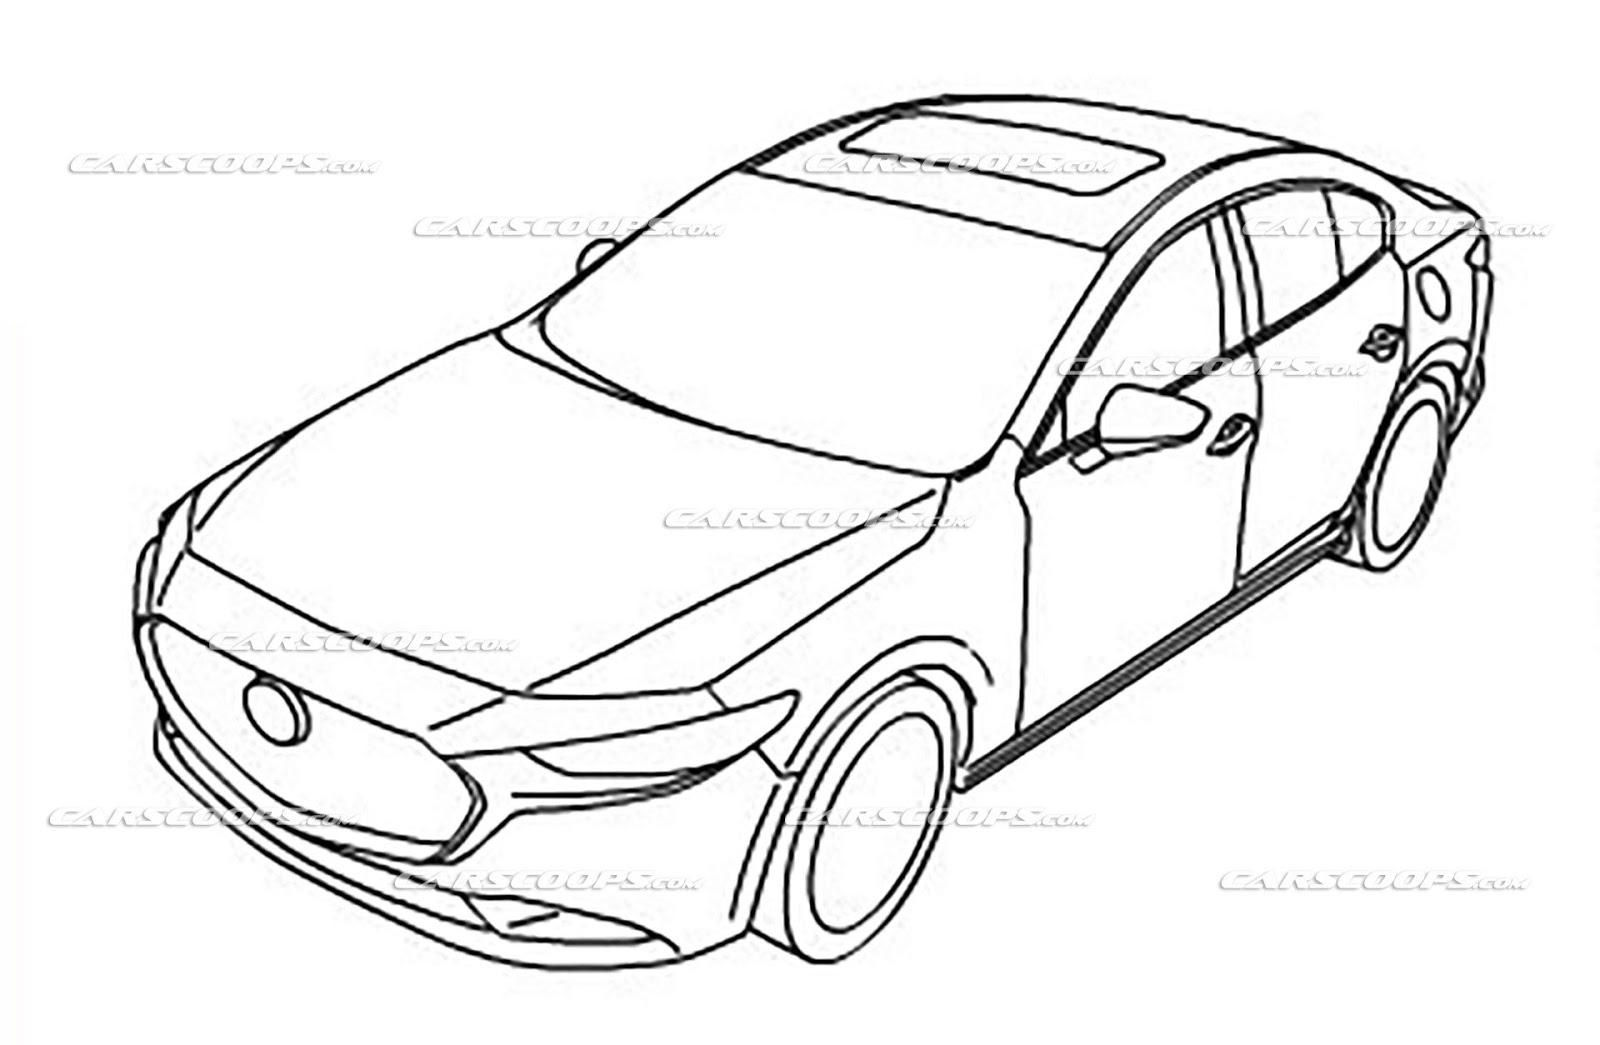 2019 mazda3 ms blog Opel Tigra we can confirm that these are official drawings of the 2019 mazda3 but we don t know if it will be sold as a 2019my or 2020my in the u s a and canada